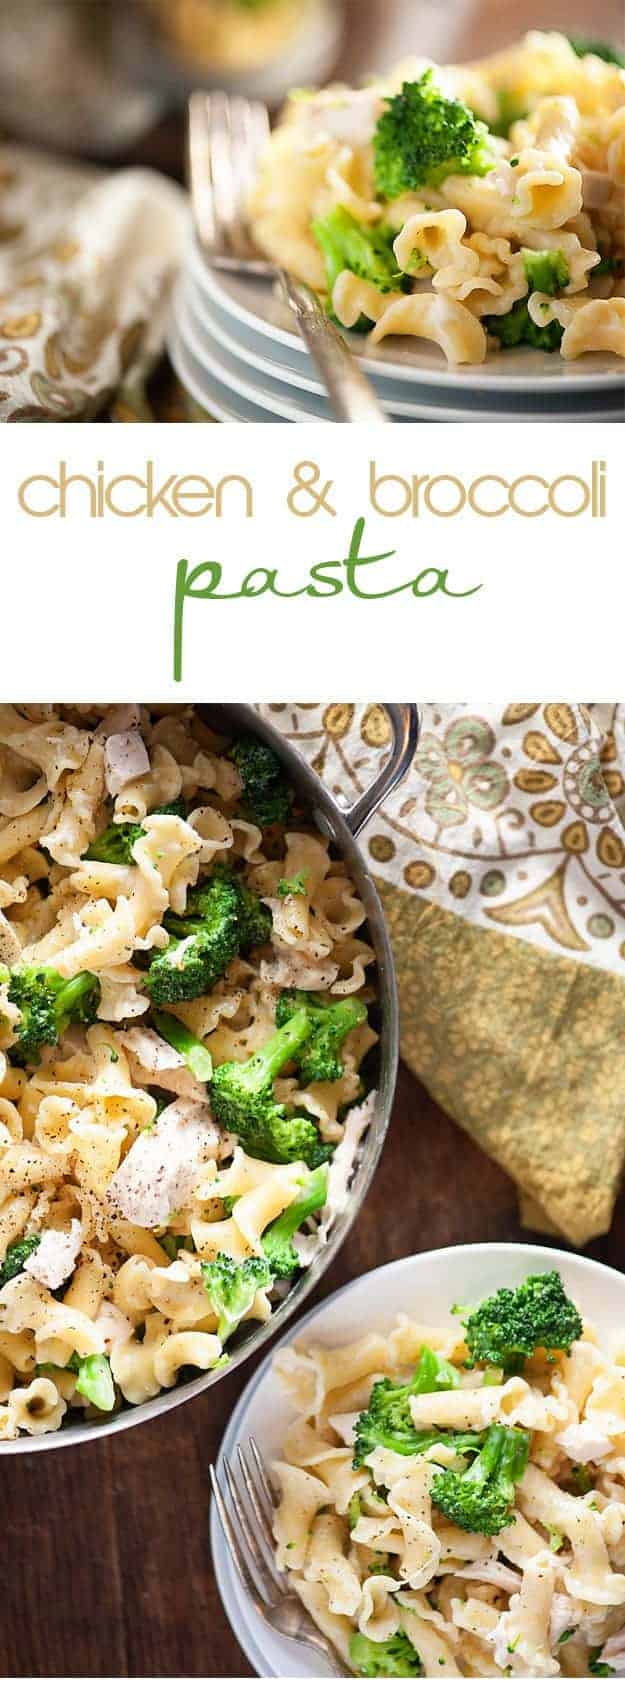 This chicken broccoli pasta recipe is one of those easy dinner recipes you'll make again and again! It's ready in just 20 minutes!